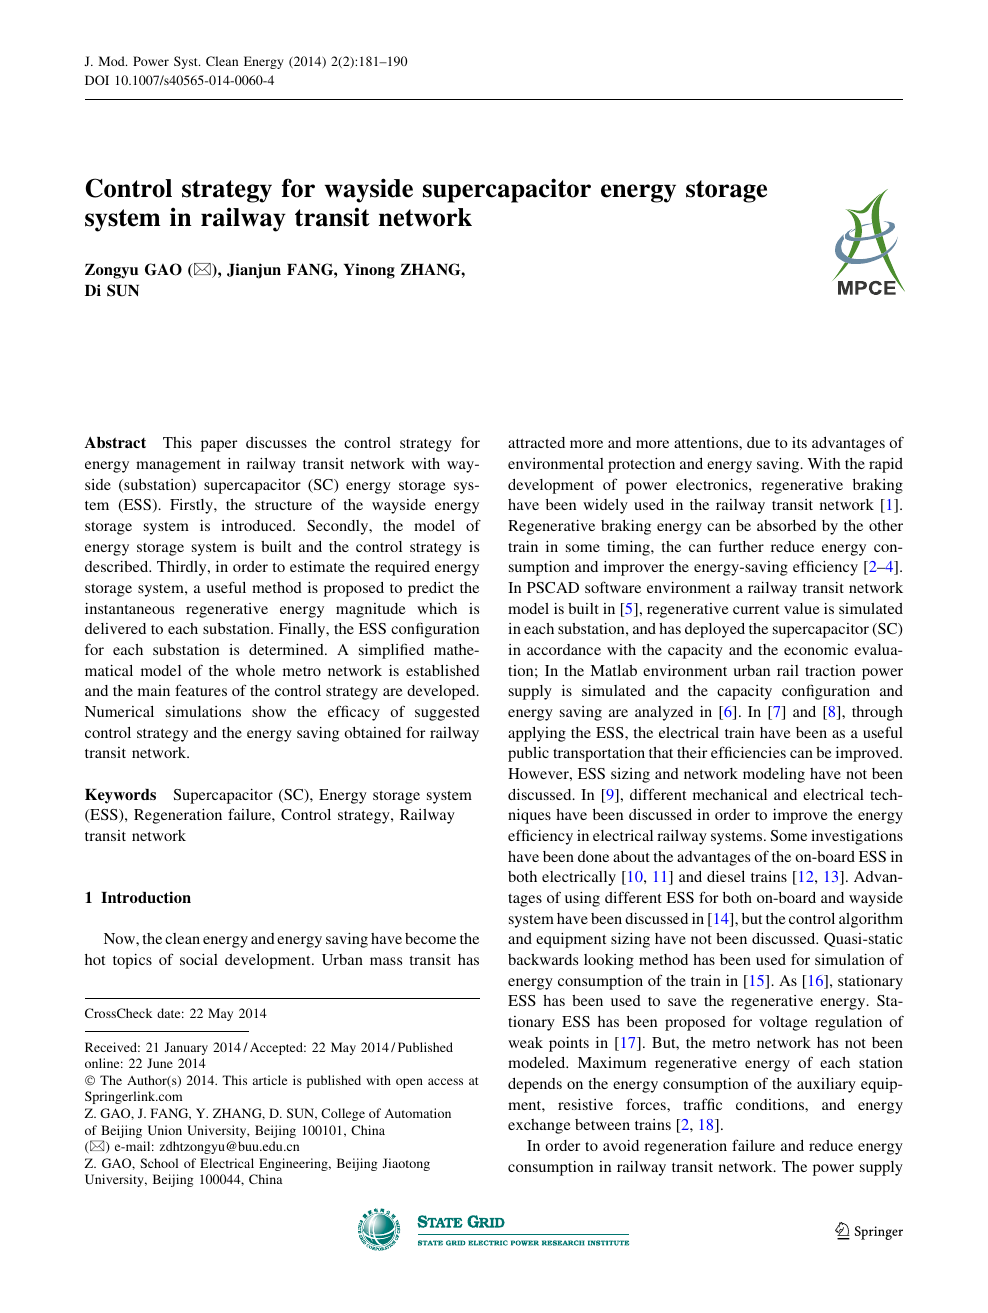 Control strategy for wayside supercapacitor energy storage